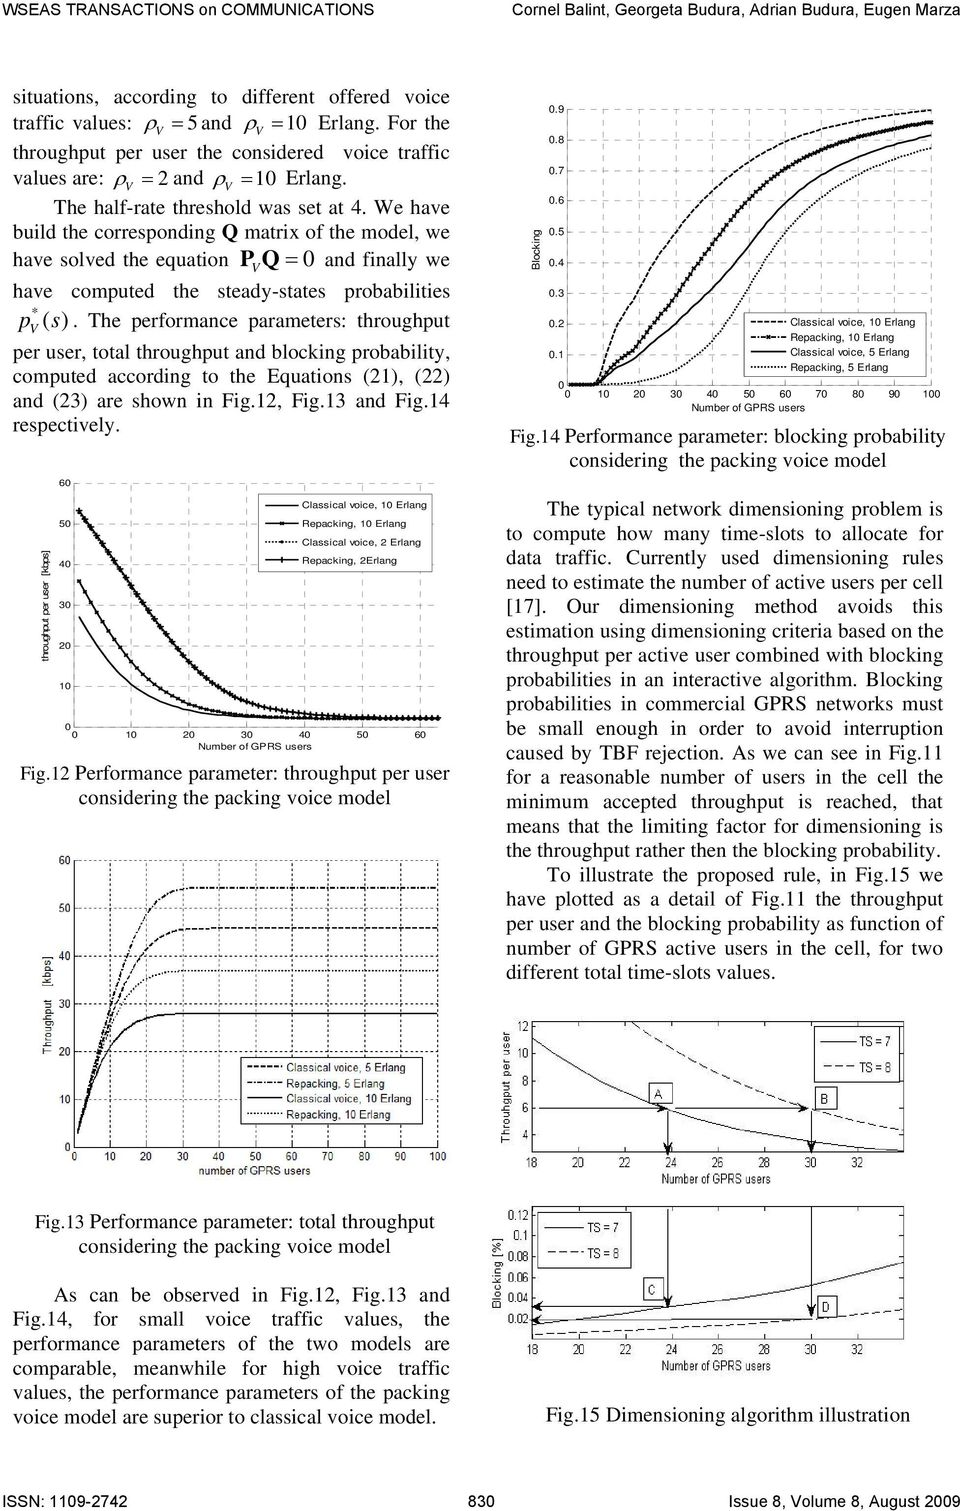 The performance parameters: throughput per user, total throughput and blocking probability, computed according to the Equations (2), (22) and (23) are shown in Fig.2, Fig.3 and Fig.4 respectively.